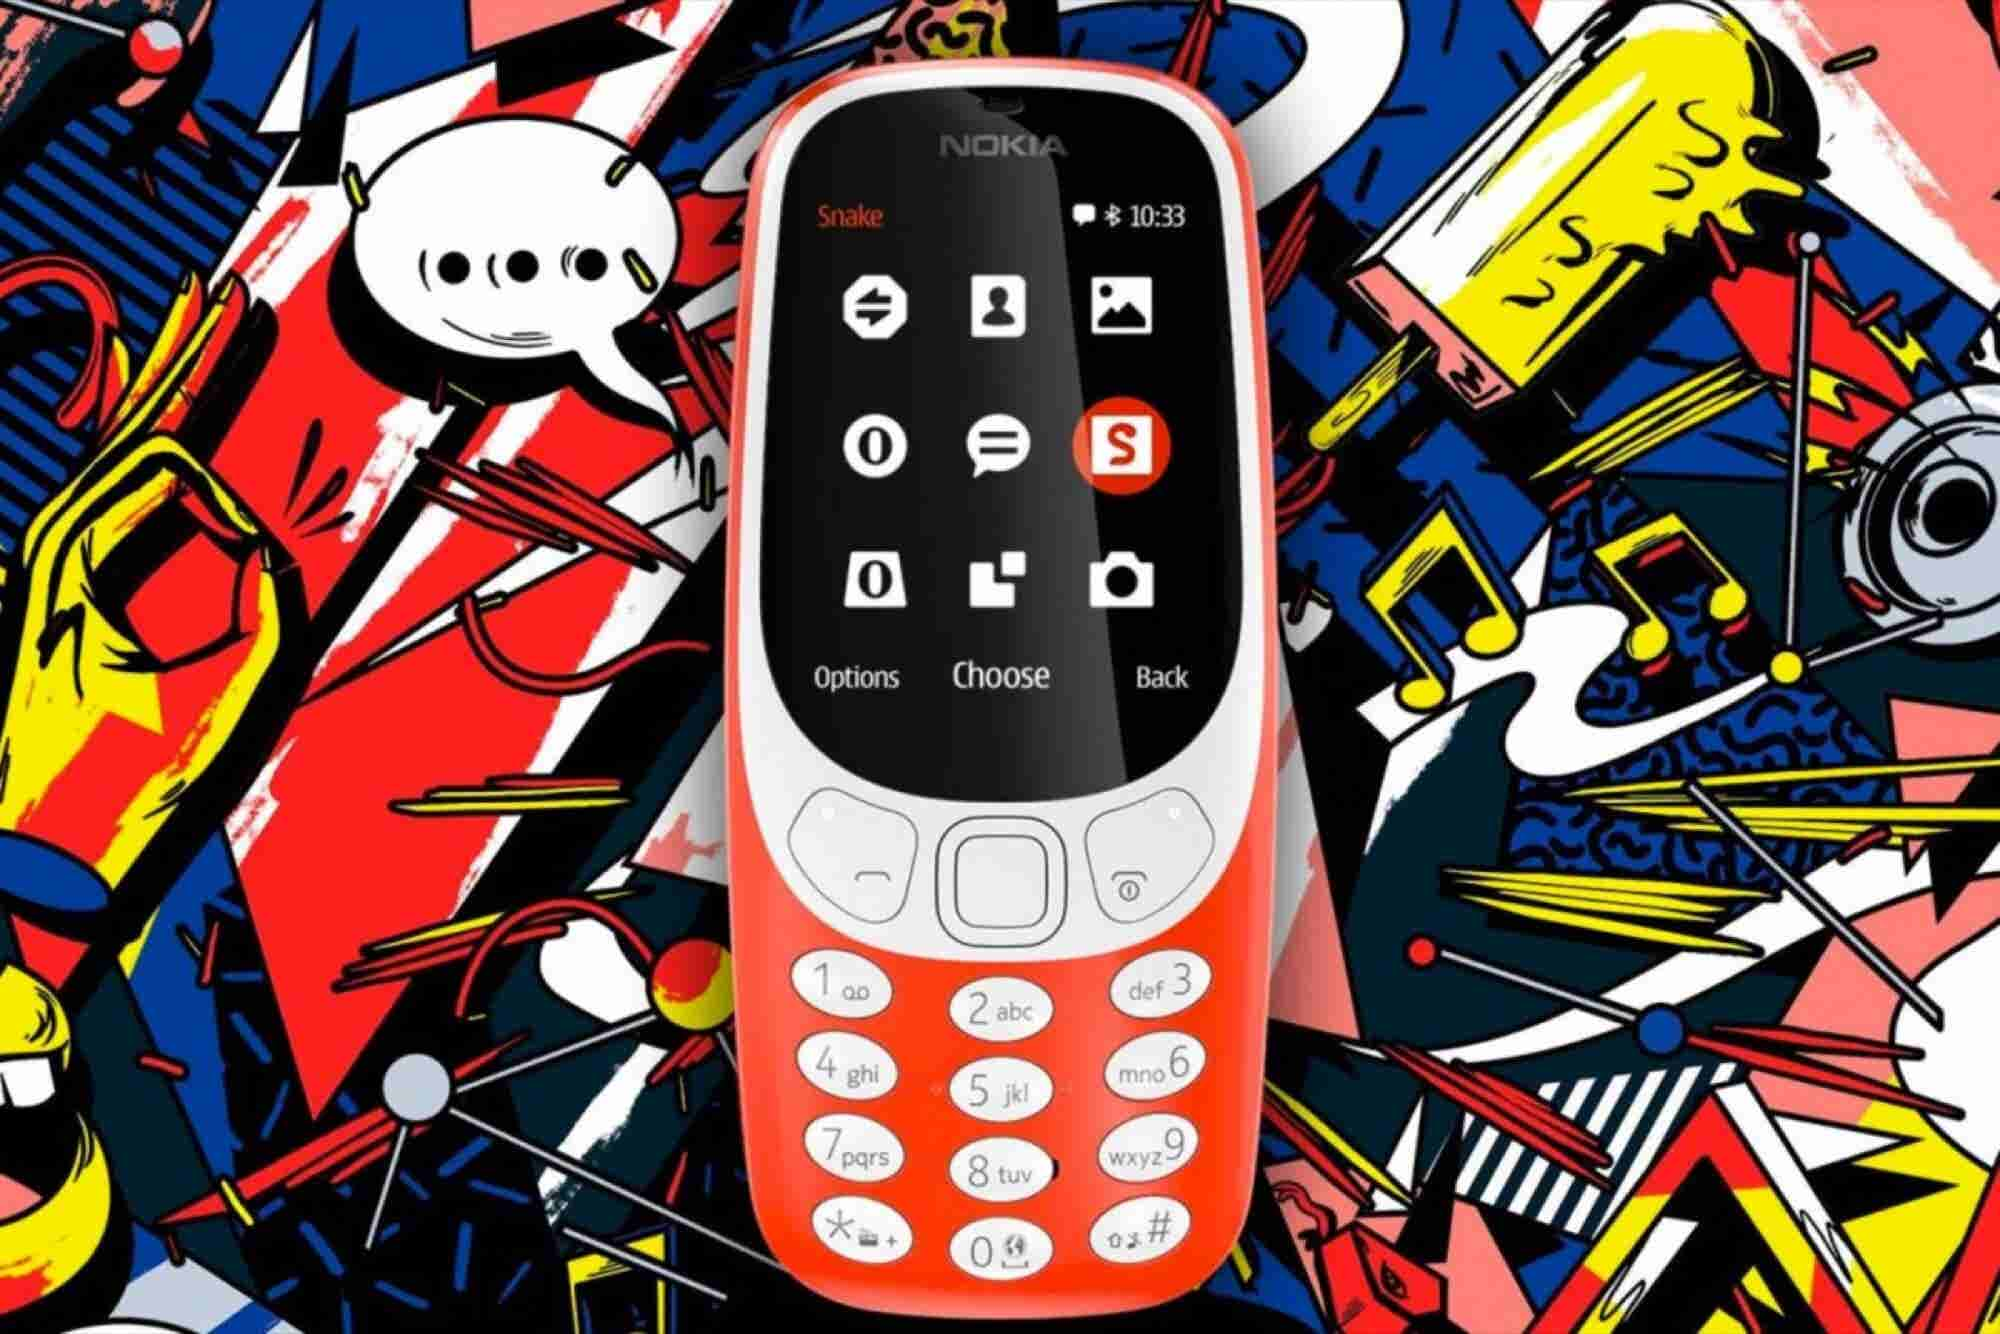 Miss Playing Snake? The Nokia 3310 Is Back.